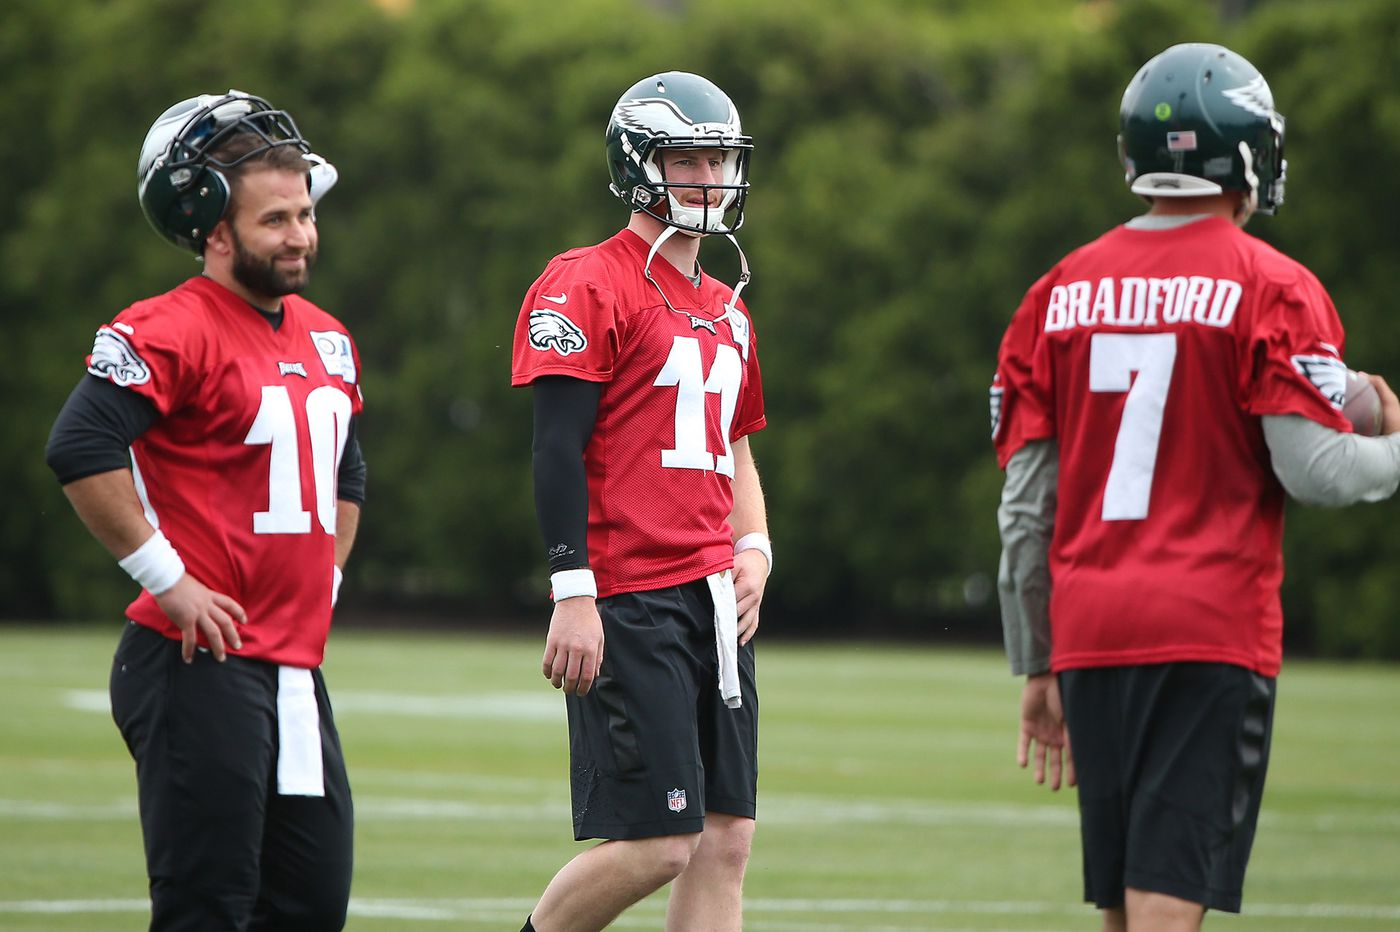 Will Carson Wentz embrace mentorship role with Jalen Hurts? Early signs are encouraging | Jeff McLane